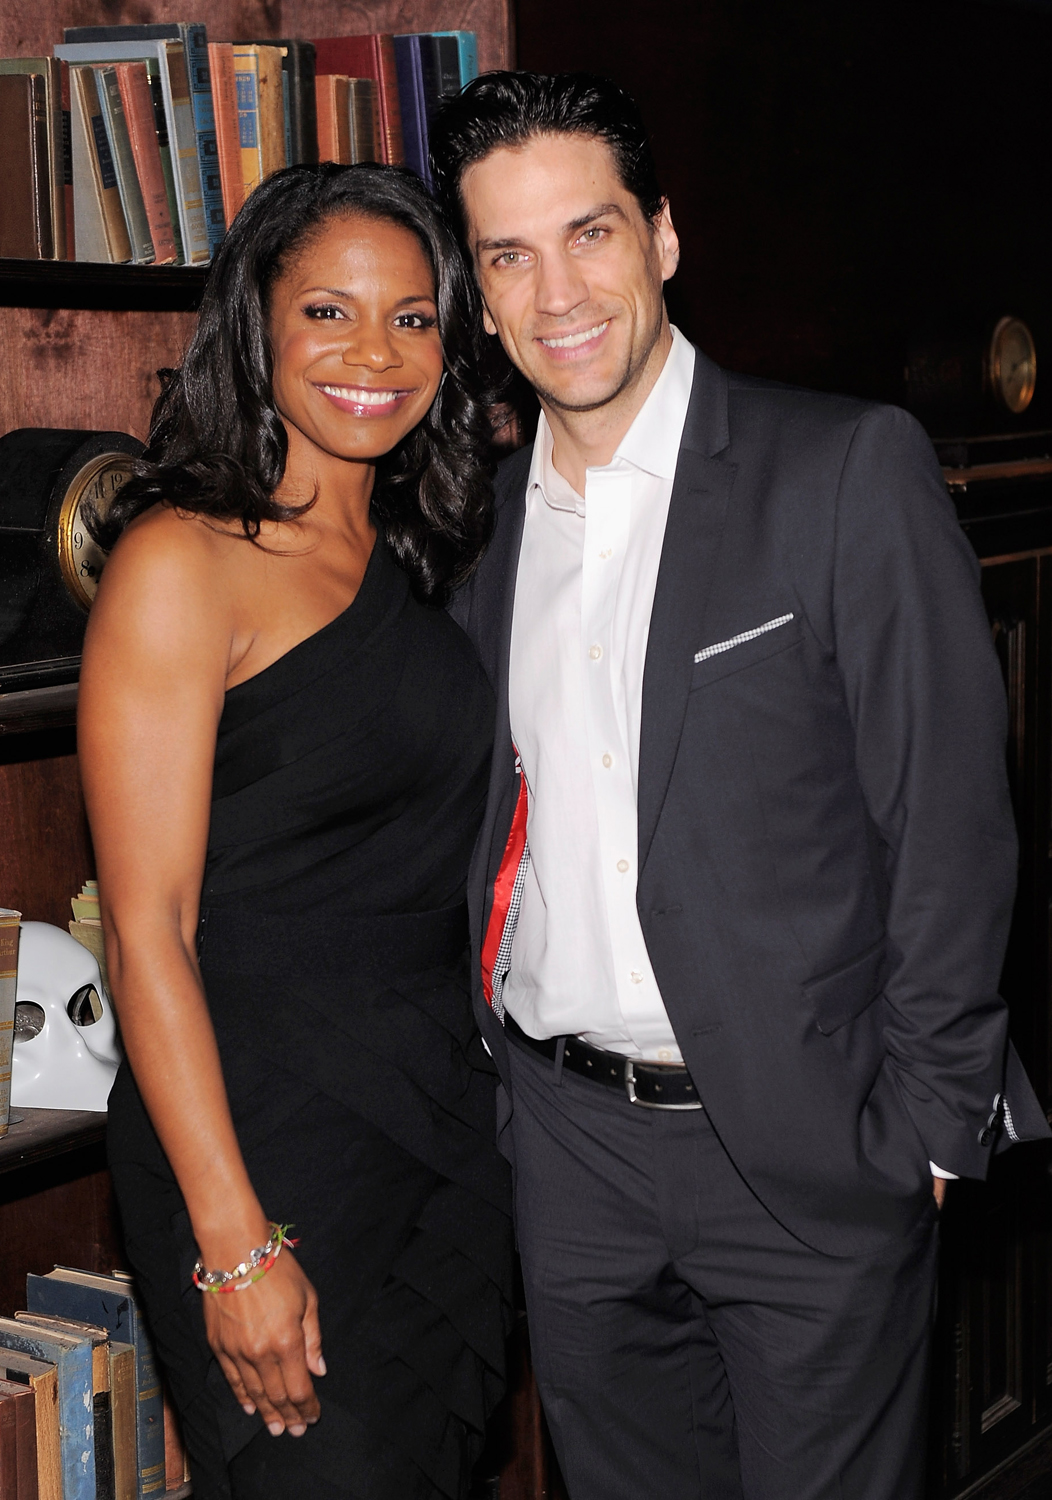 Former 'Private Practice' star Audra McDonald marries Will ...Will Swenson Audra Mcdonald Wedding